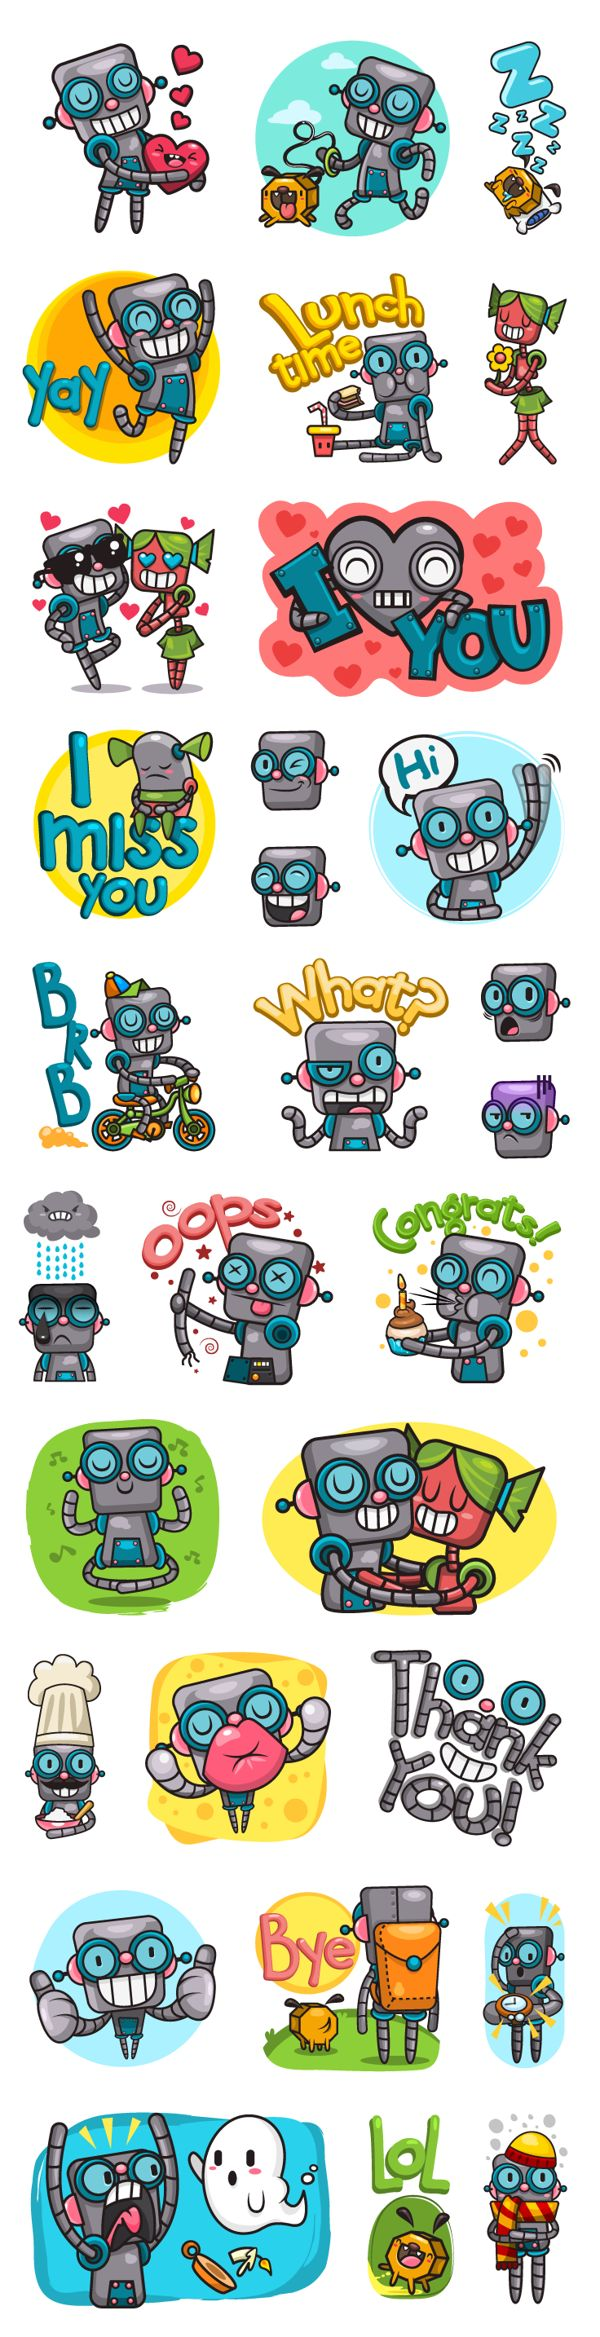 Viber Robot Stickers by Claudia Murillas, via Behance